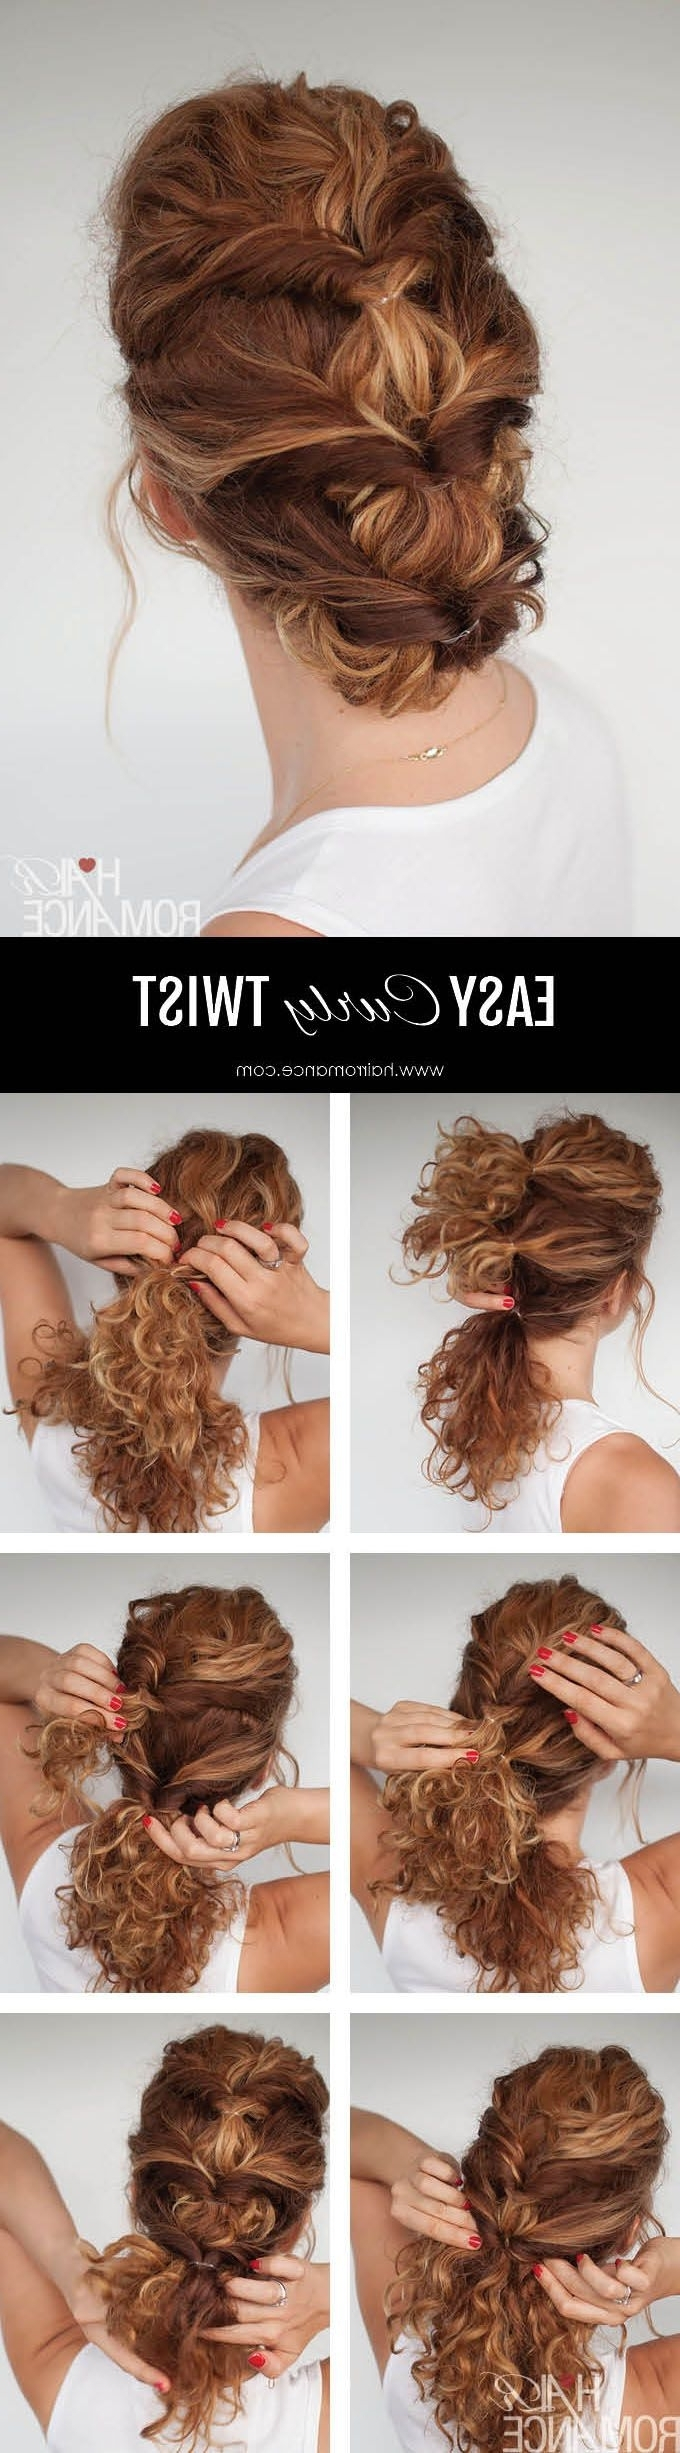 17 Estilos Increíbles Para Cabello Rizado Natural | Curly Hair With Updo Hairstyles For Super Curly Hair (View 8 of 15)